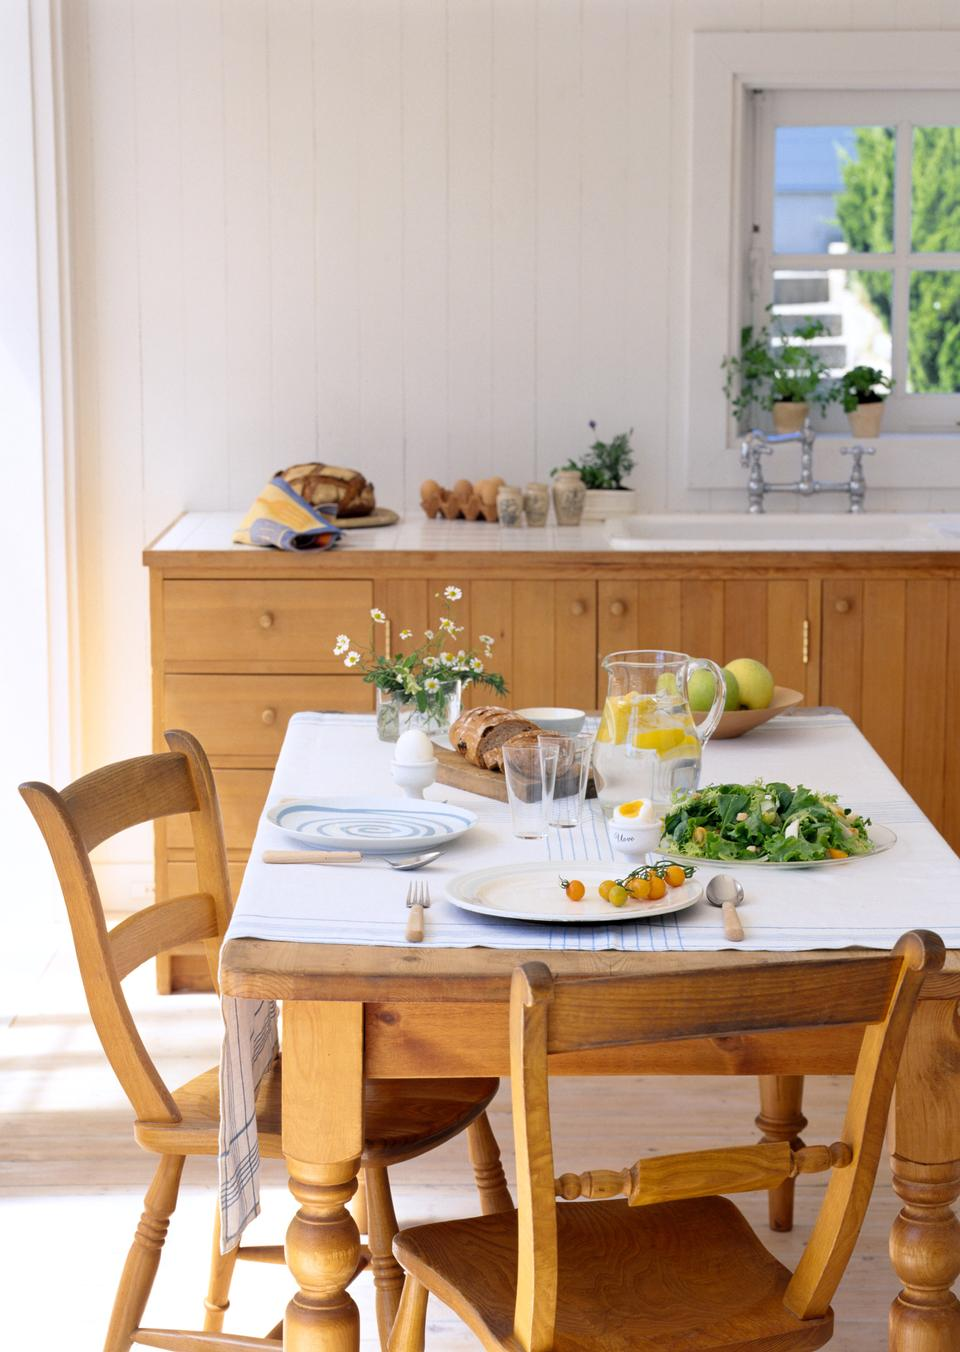 Festive well-laid table with salad and drink